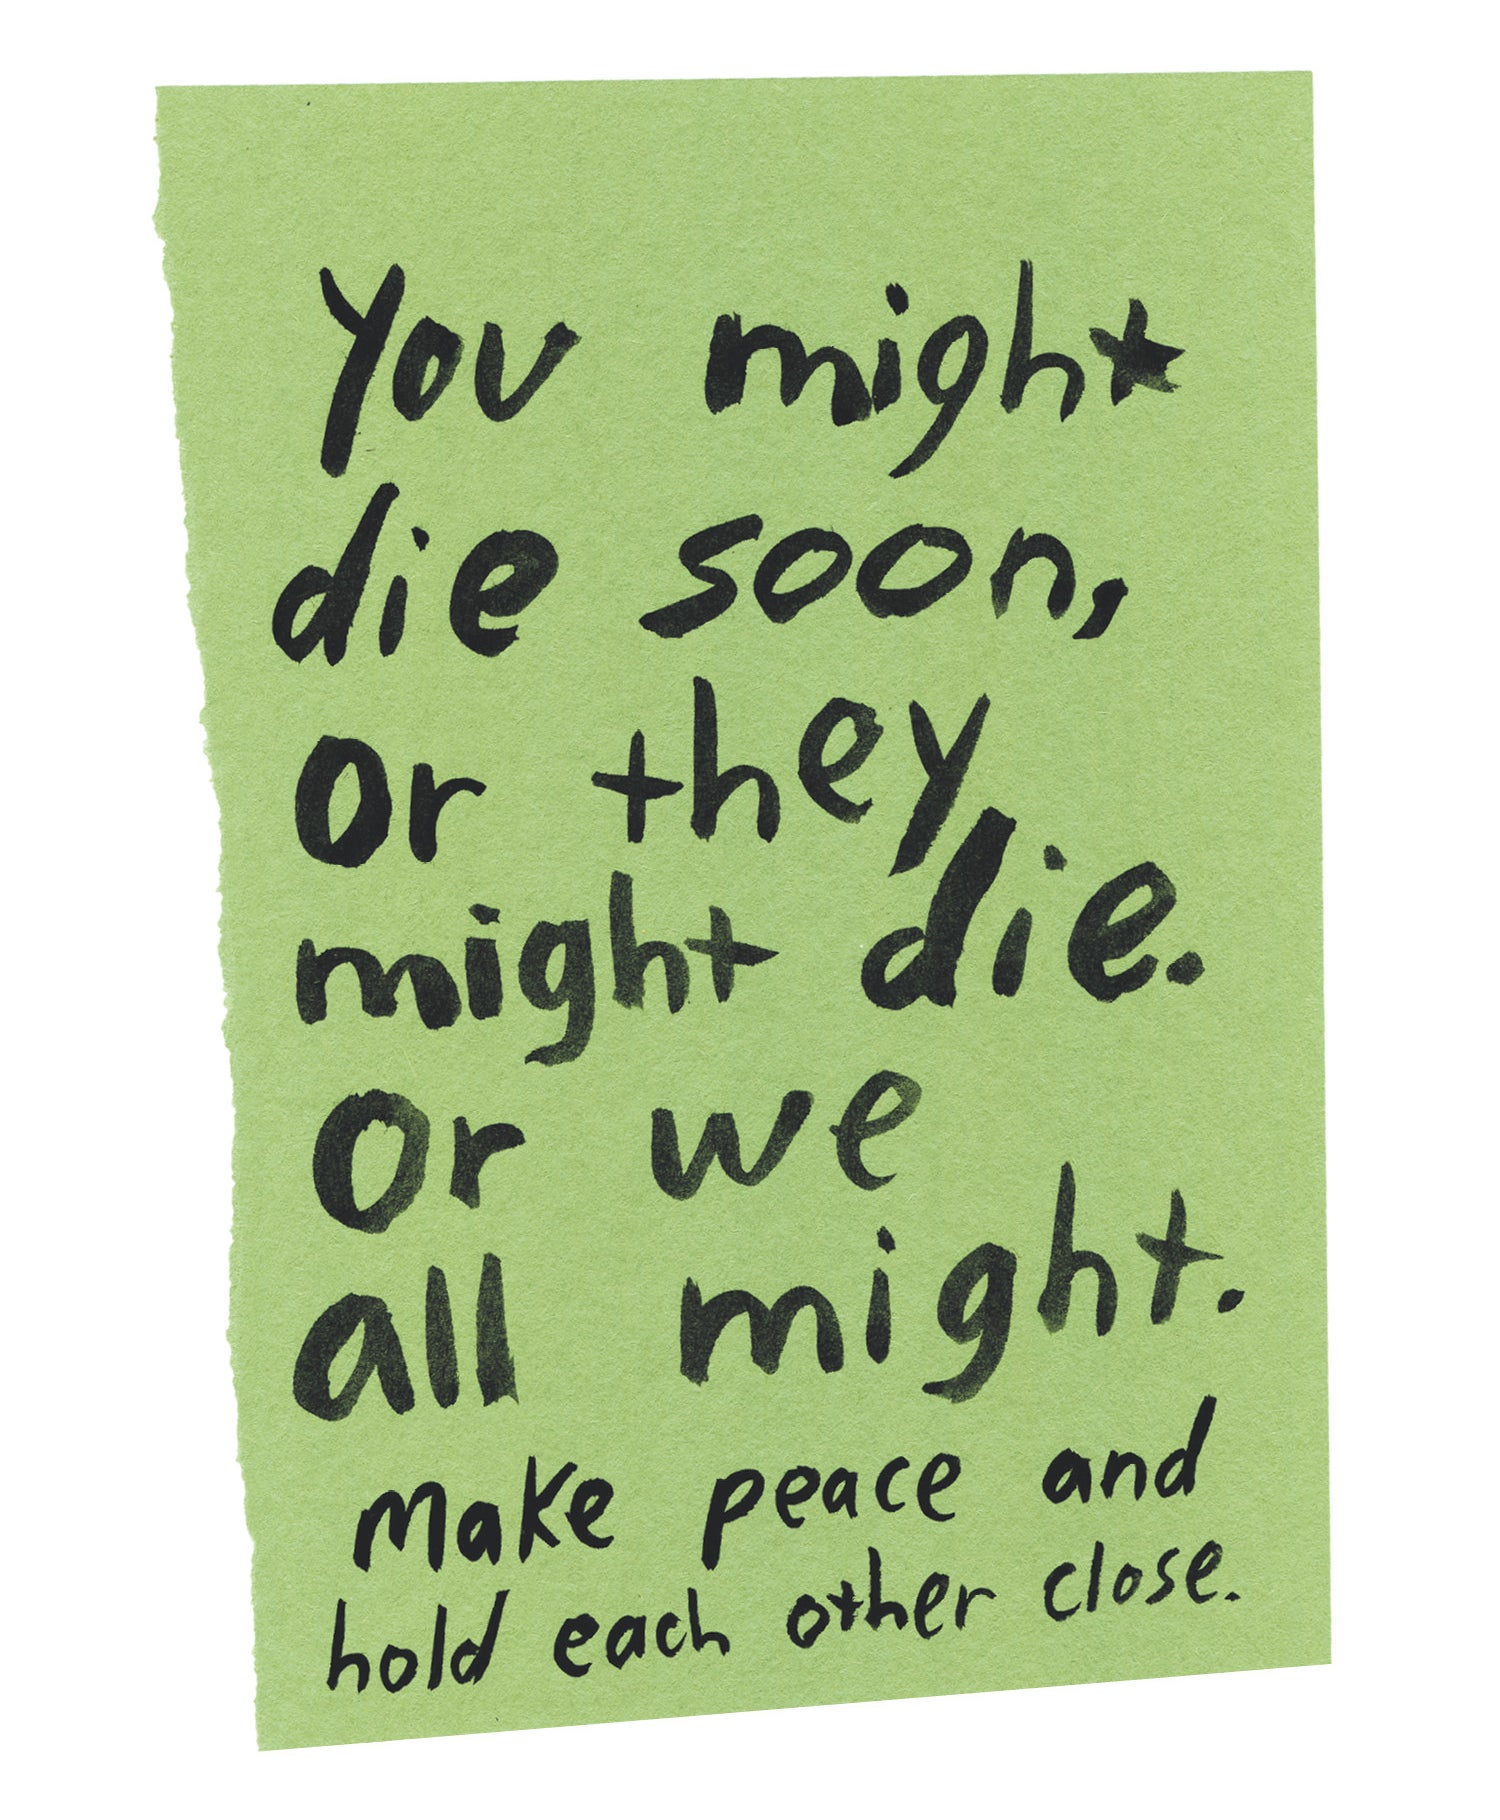 """Handwritten text on torn piece of colored paper: """"You might die soon, or they might die. Or we all might. Make peace and hold each other close."""""""